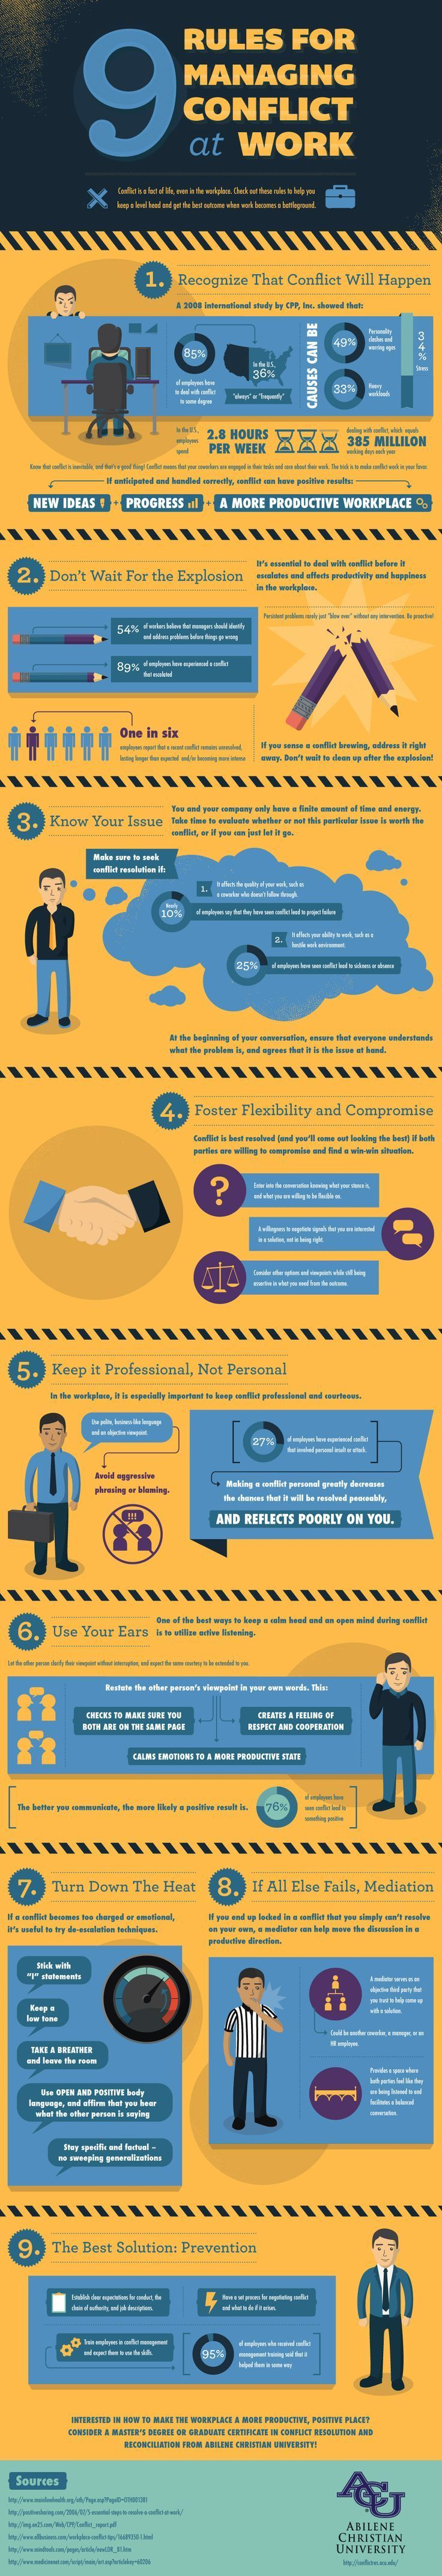 9 Rules For Conflict Management At Work | PMP | Pinterest